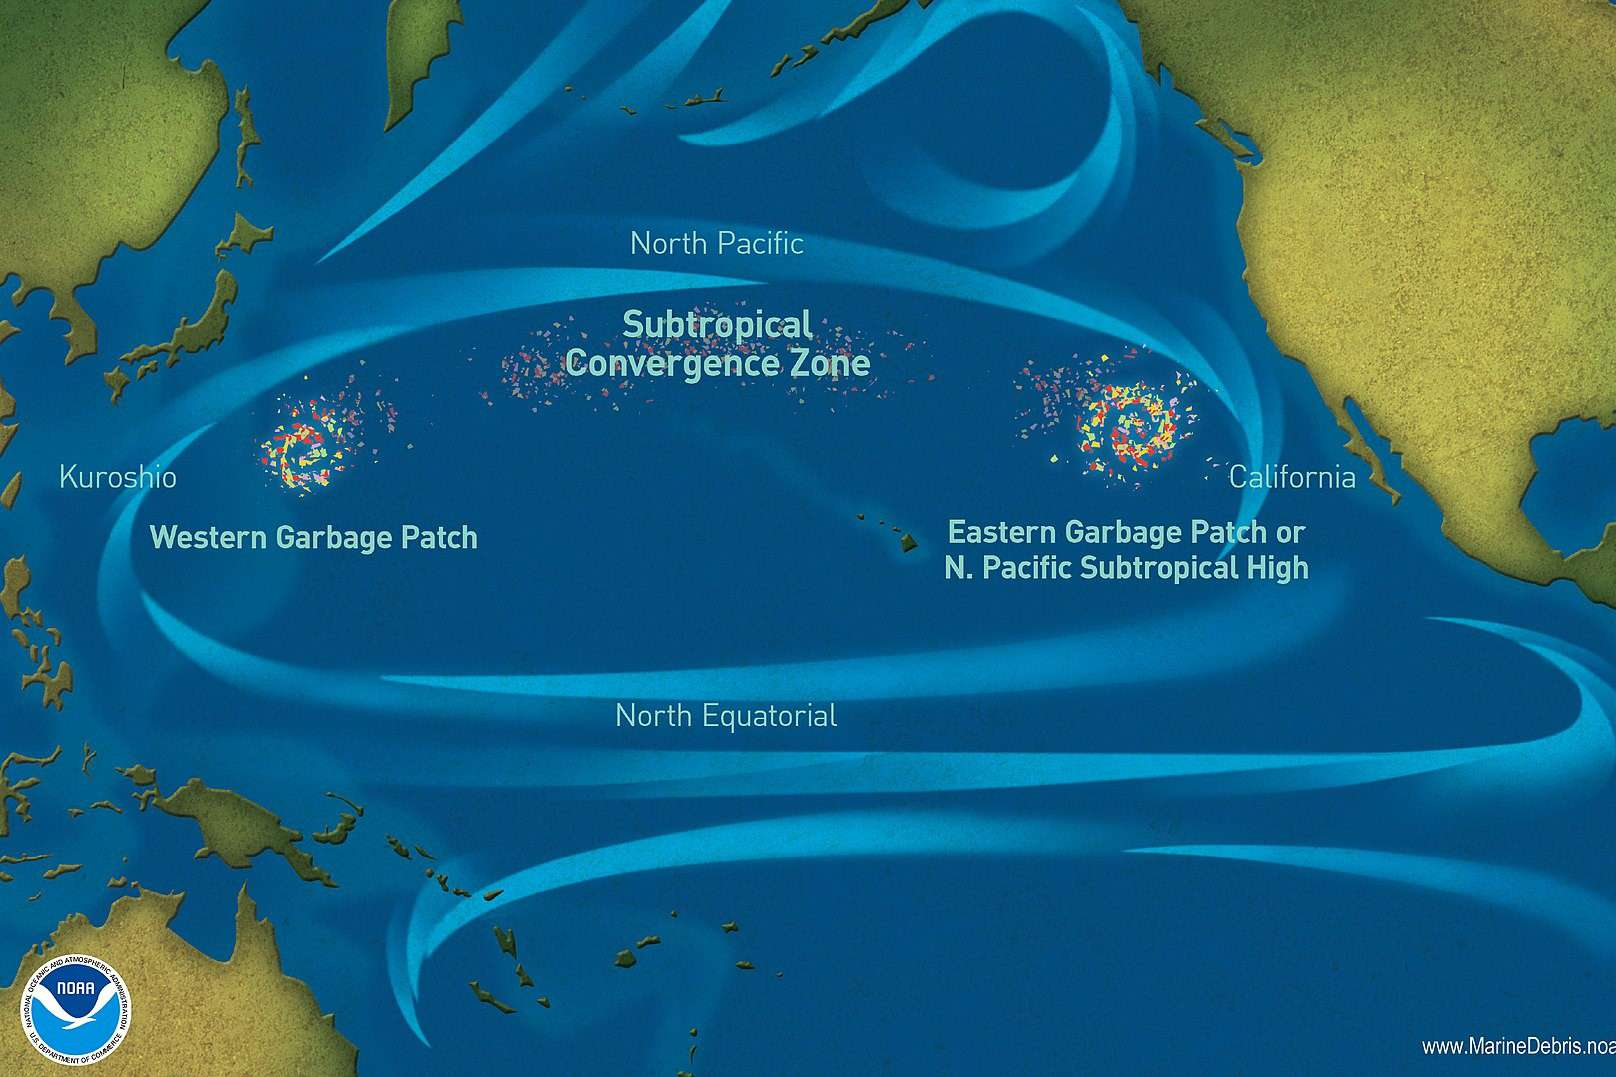 Map of four ocean currents that make up Great Pacific Garbage Patch and convergence zones where litter accumulates